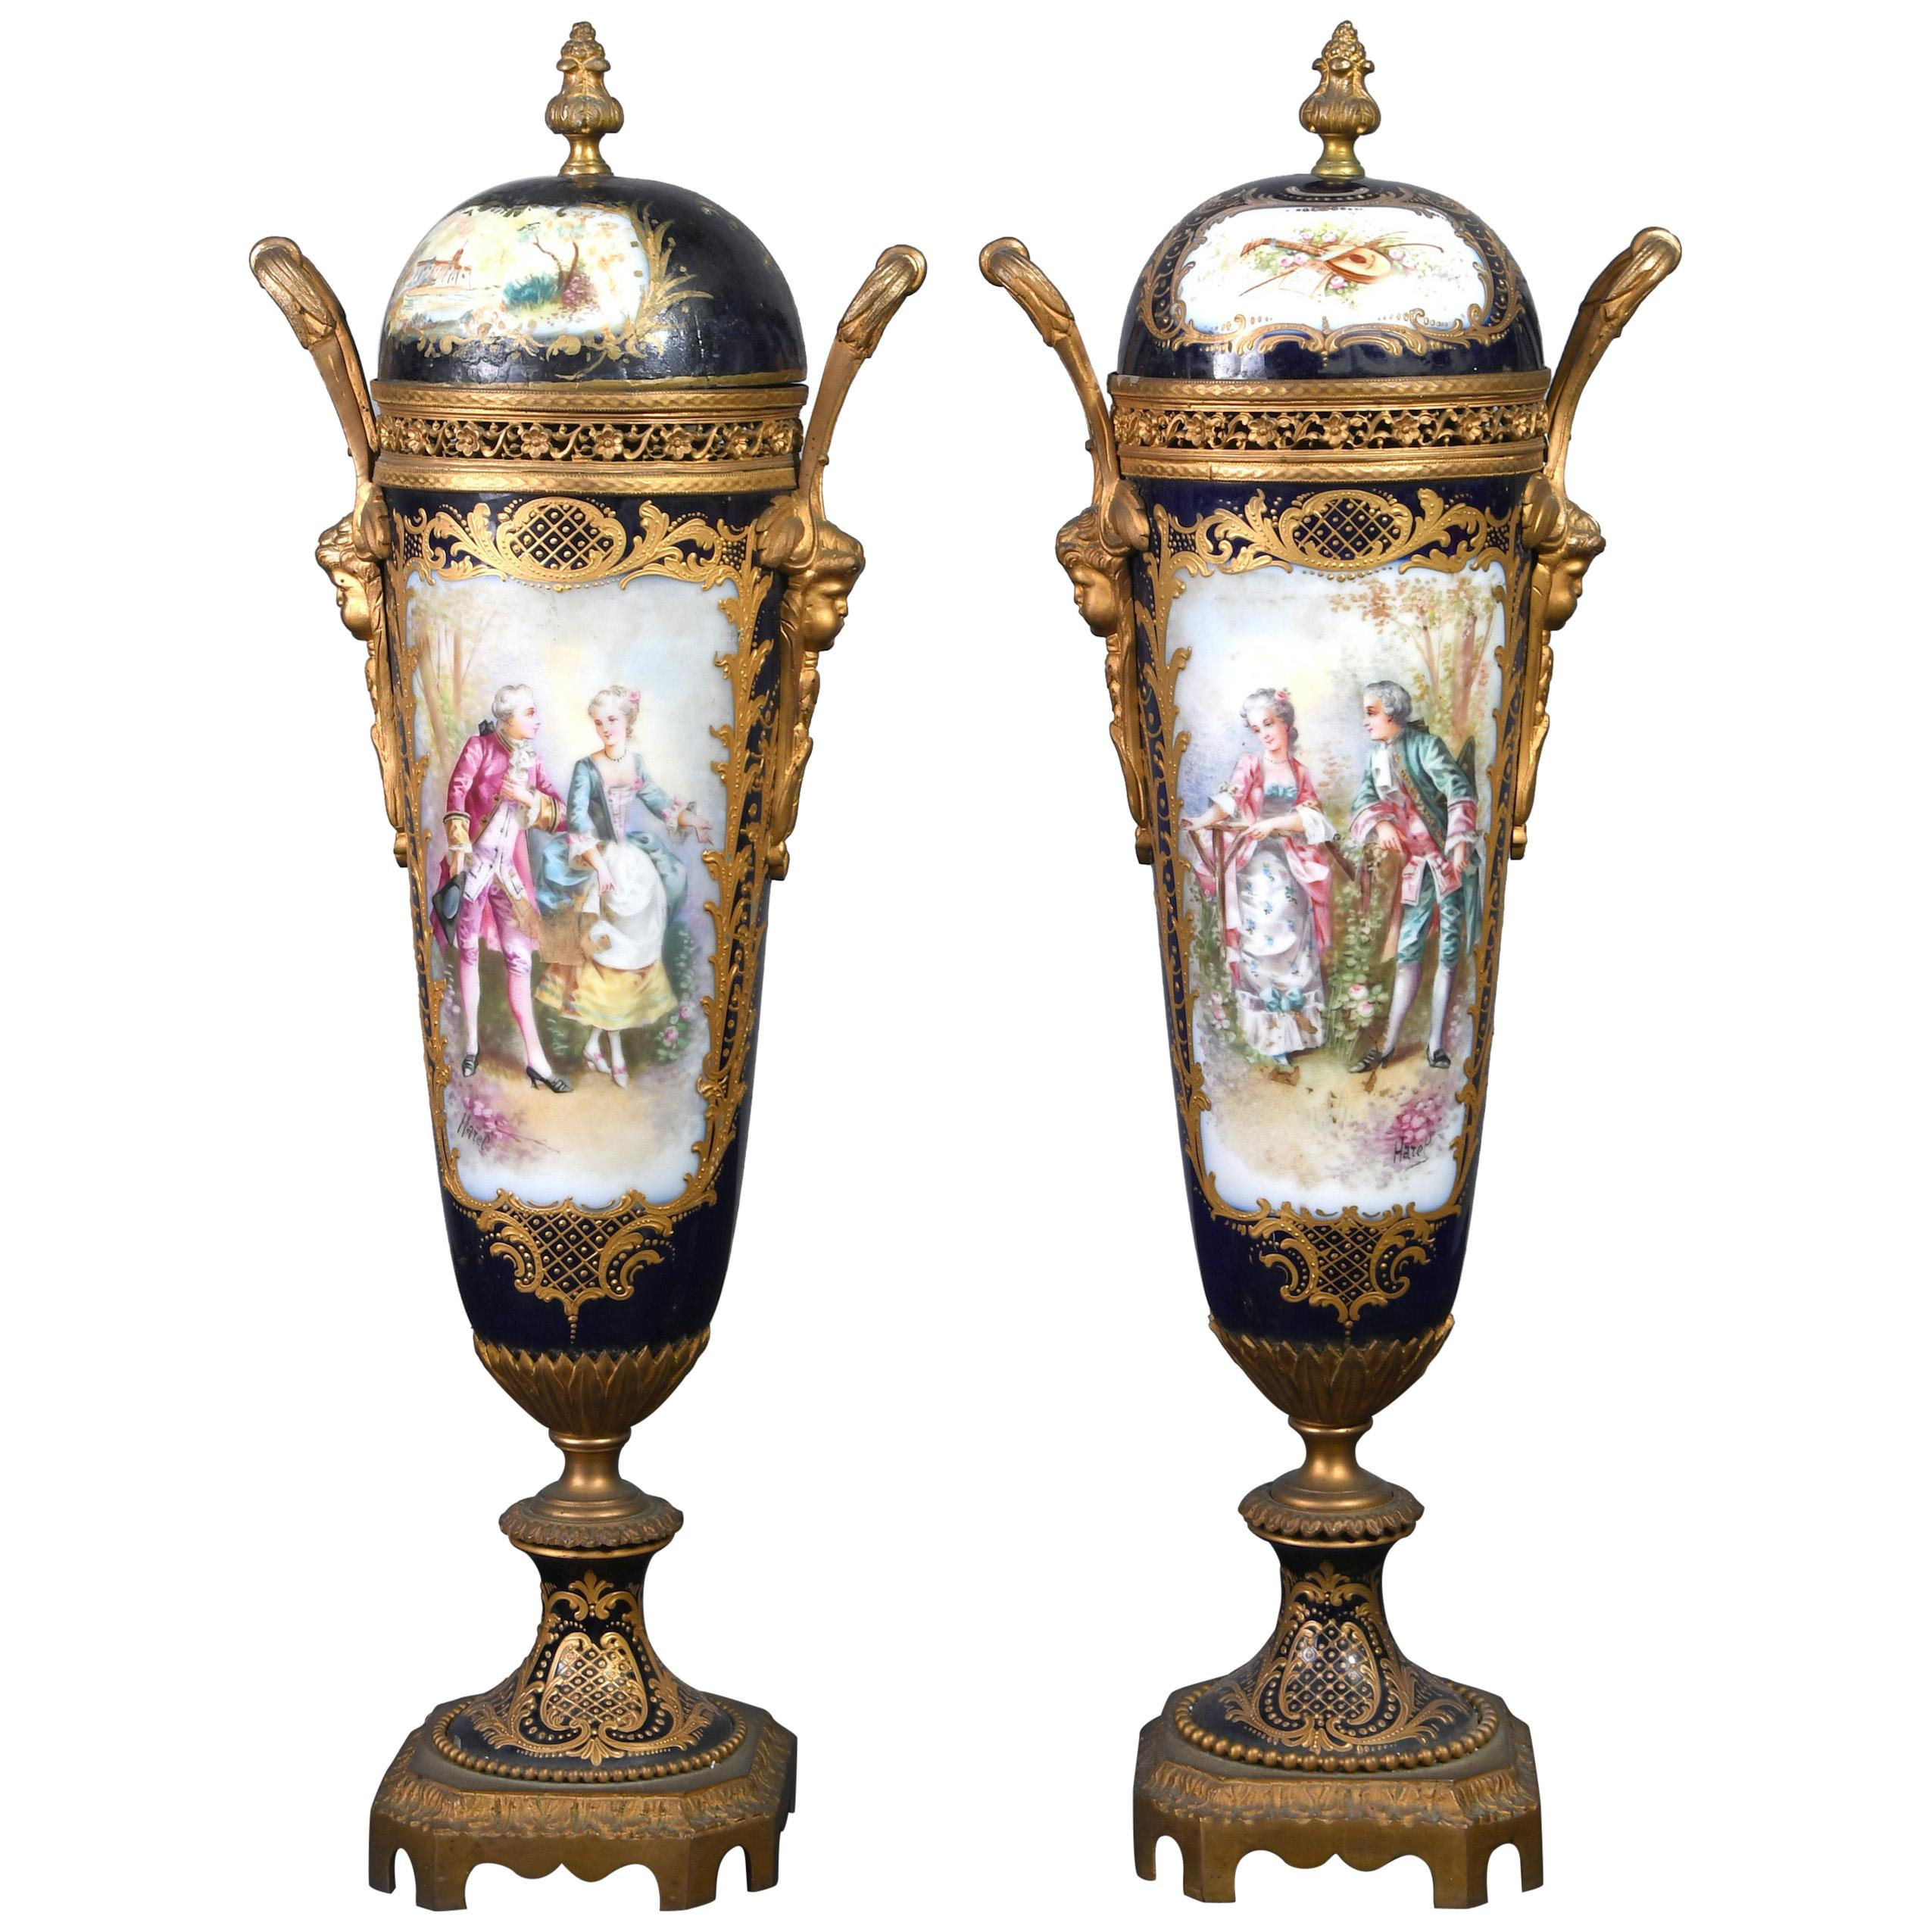 19th Century French Sevres Pair of Porcelain Bronze Covered Vases